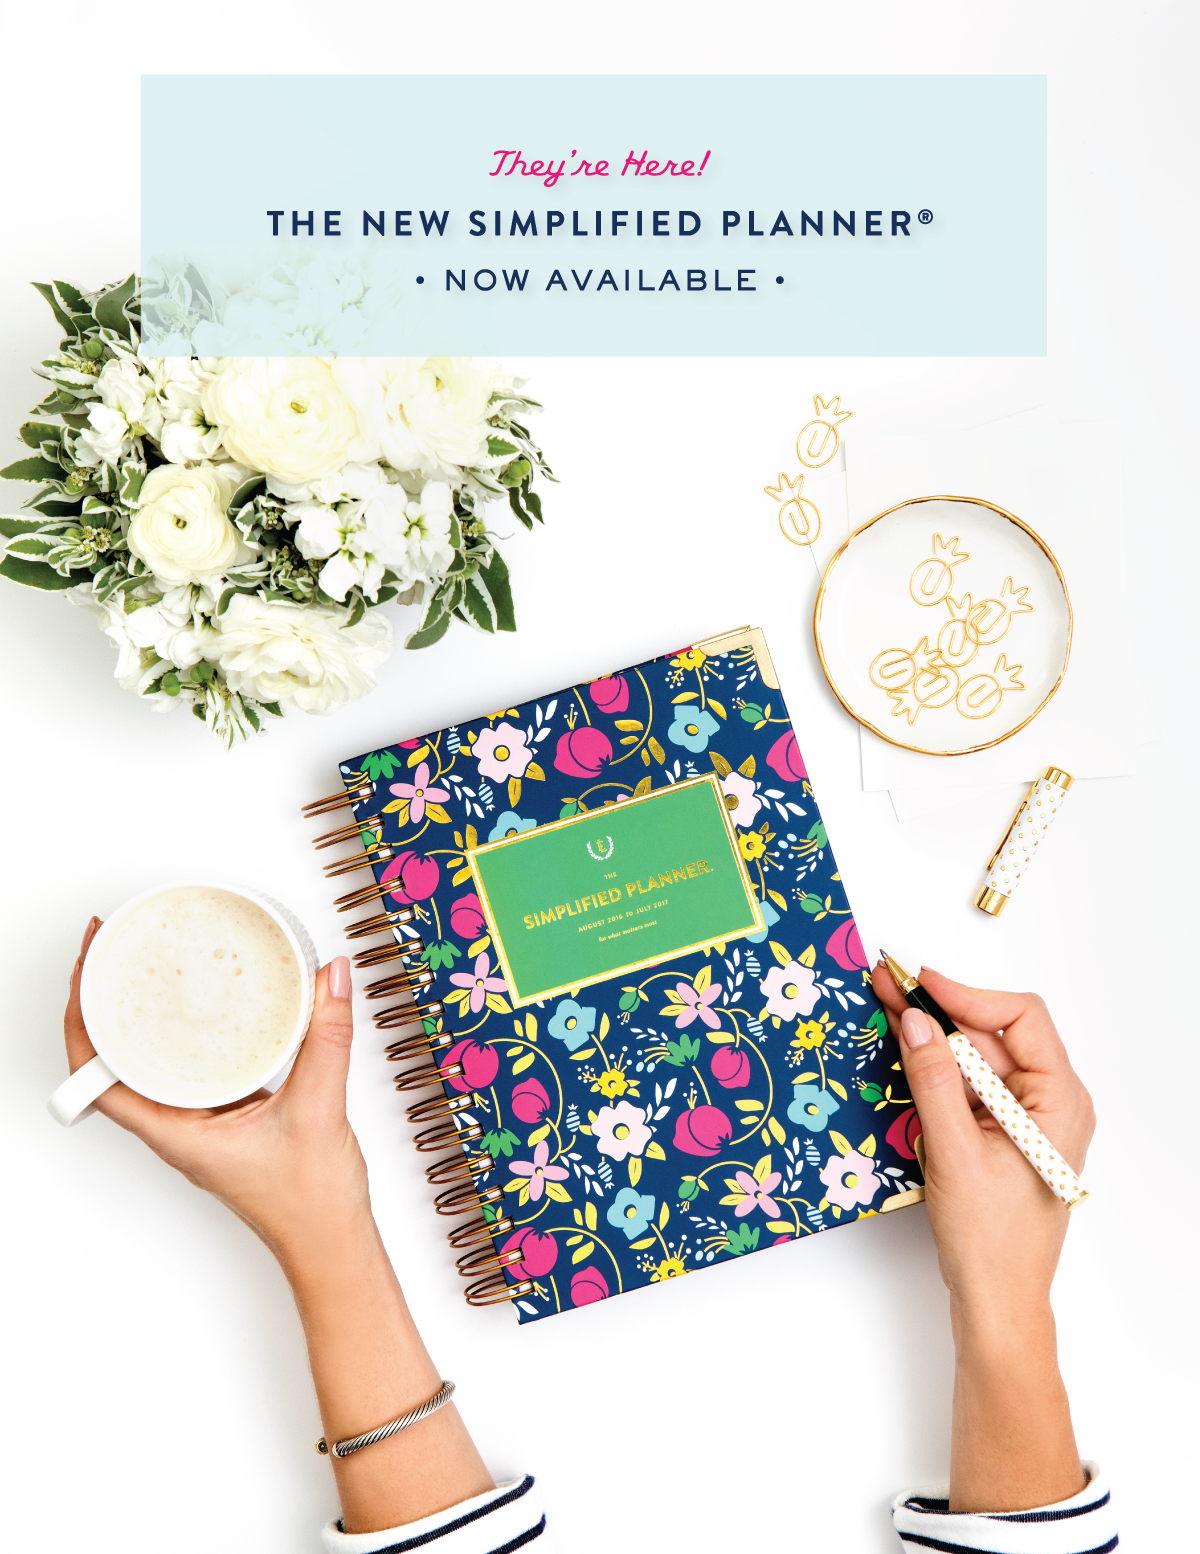 Monthly, weekly or daily... are you picking the right planner for your planning needs? There are pros and cons to all the different formats making it crucial to understand how you prefer to plan and use your planner. Come learn how to pick the right planner for you!